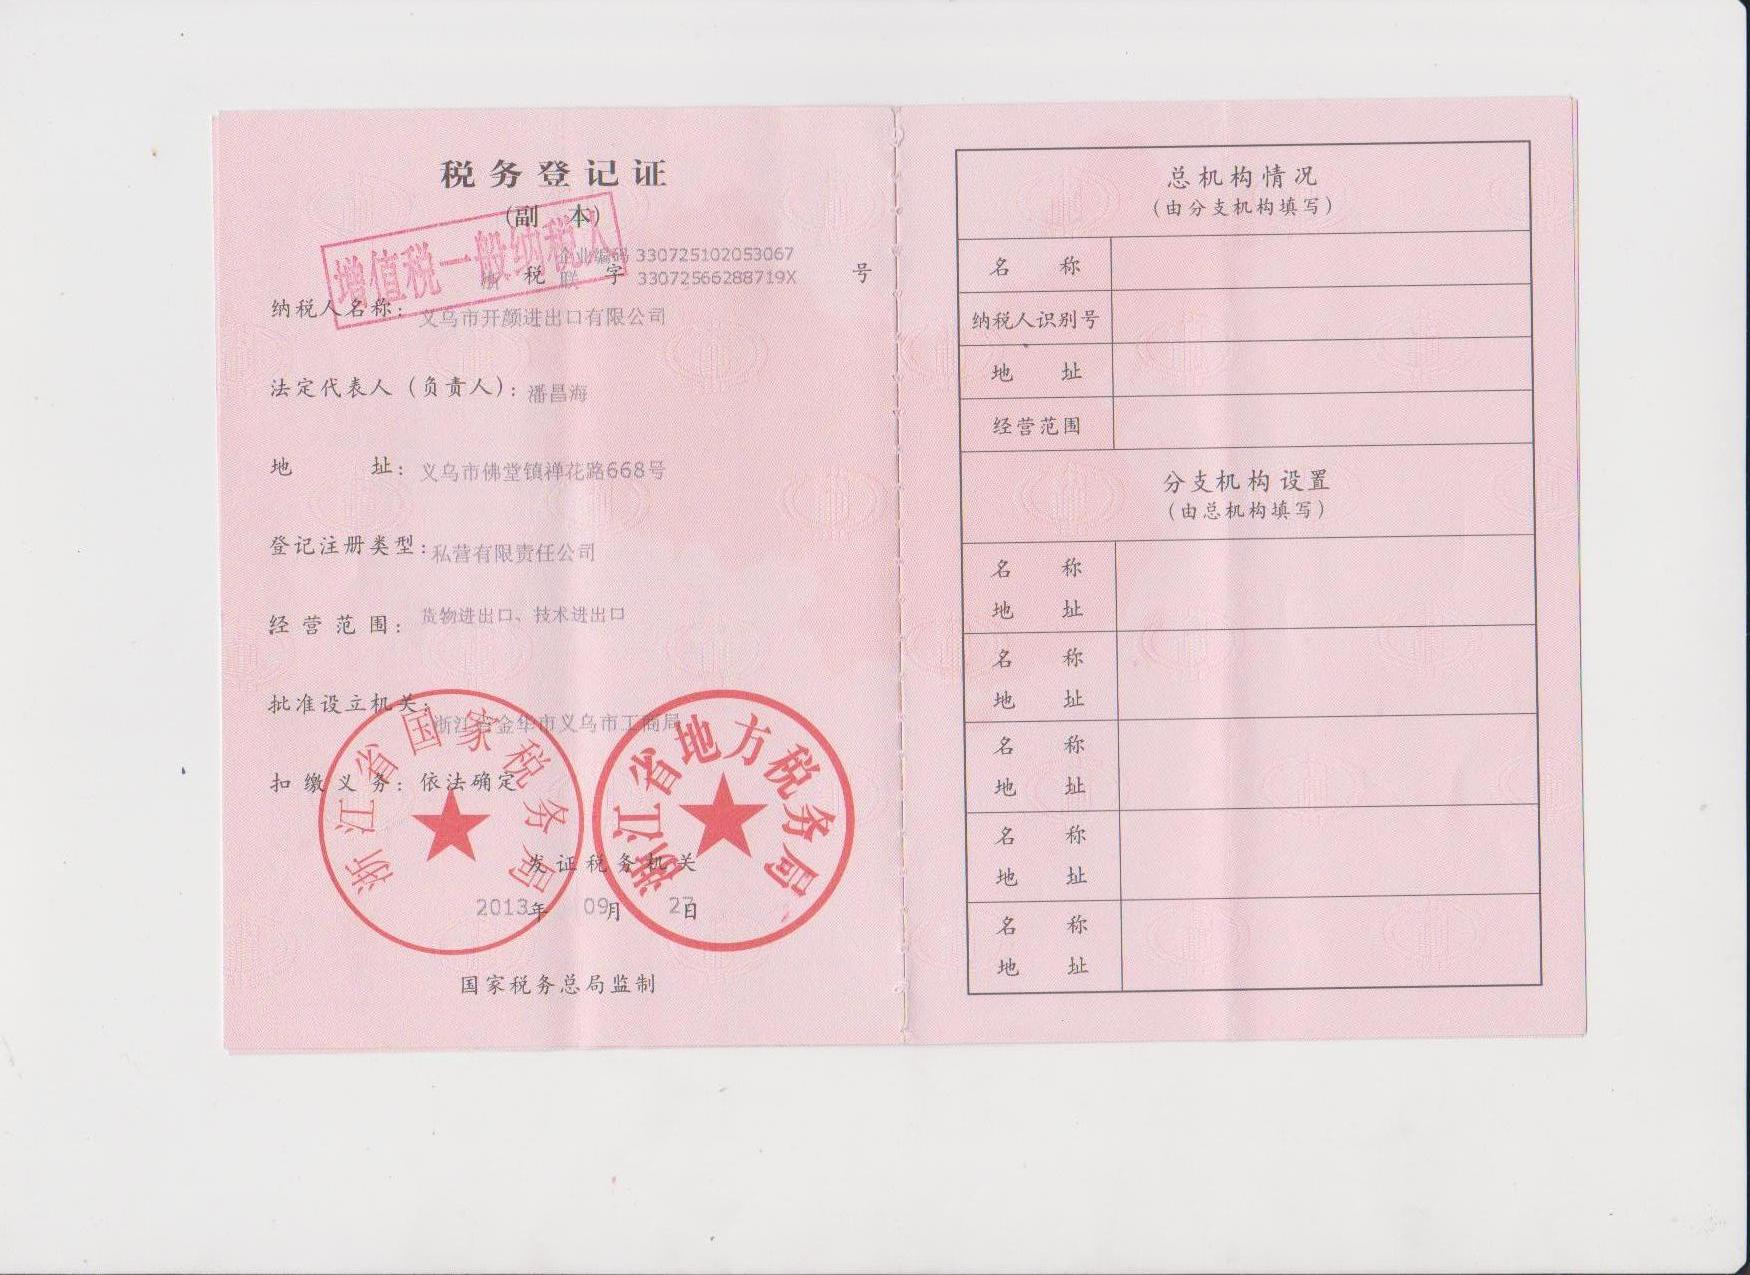 BIOSSOMING SMILEPUS MEDICAL COMANY TAX REGISTRATION CERTIFICATE